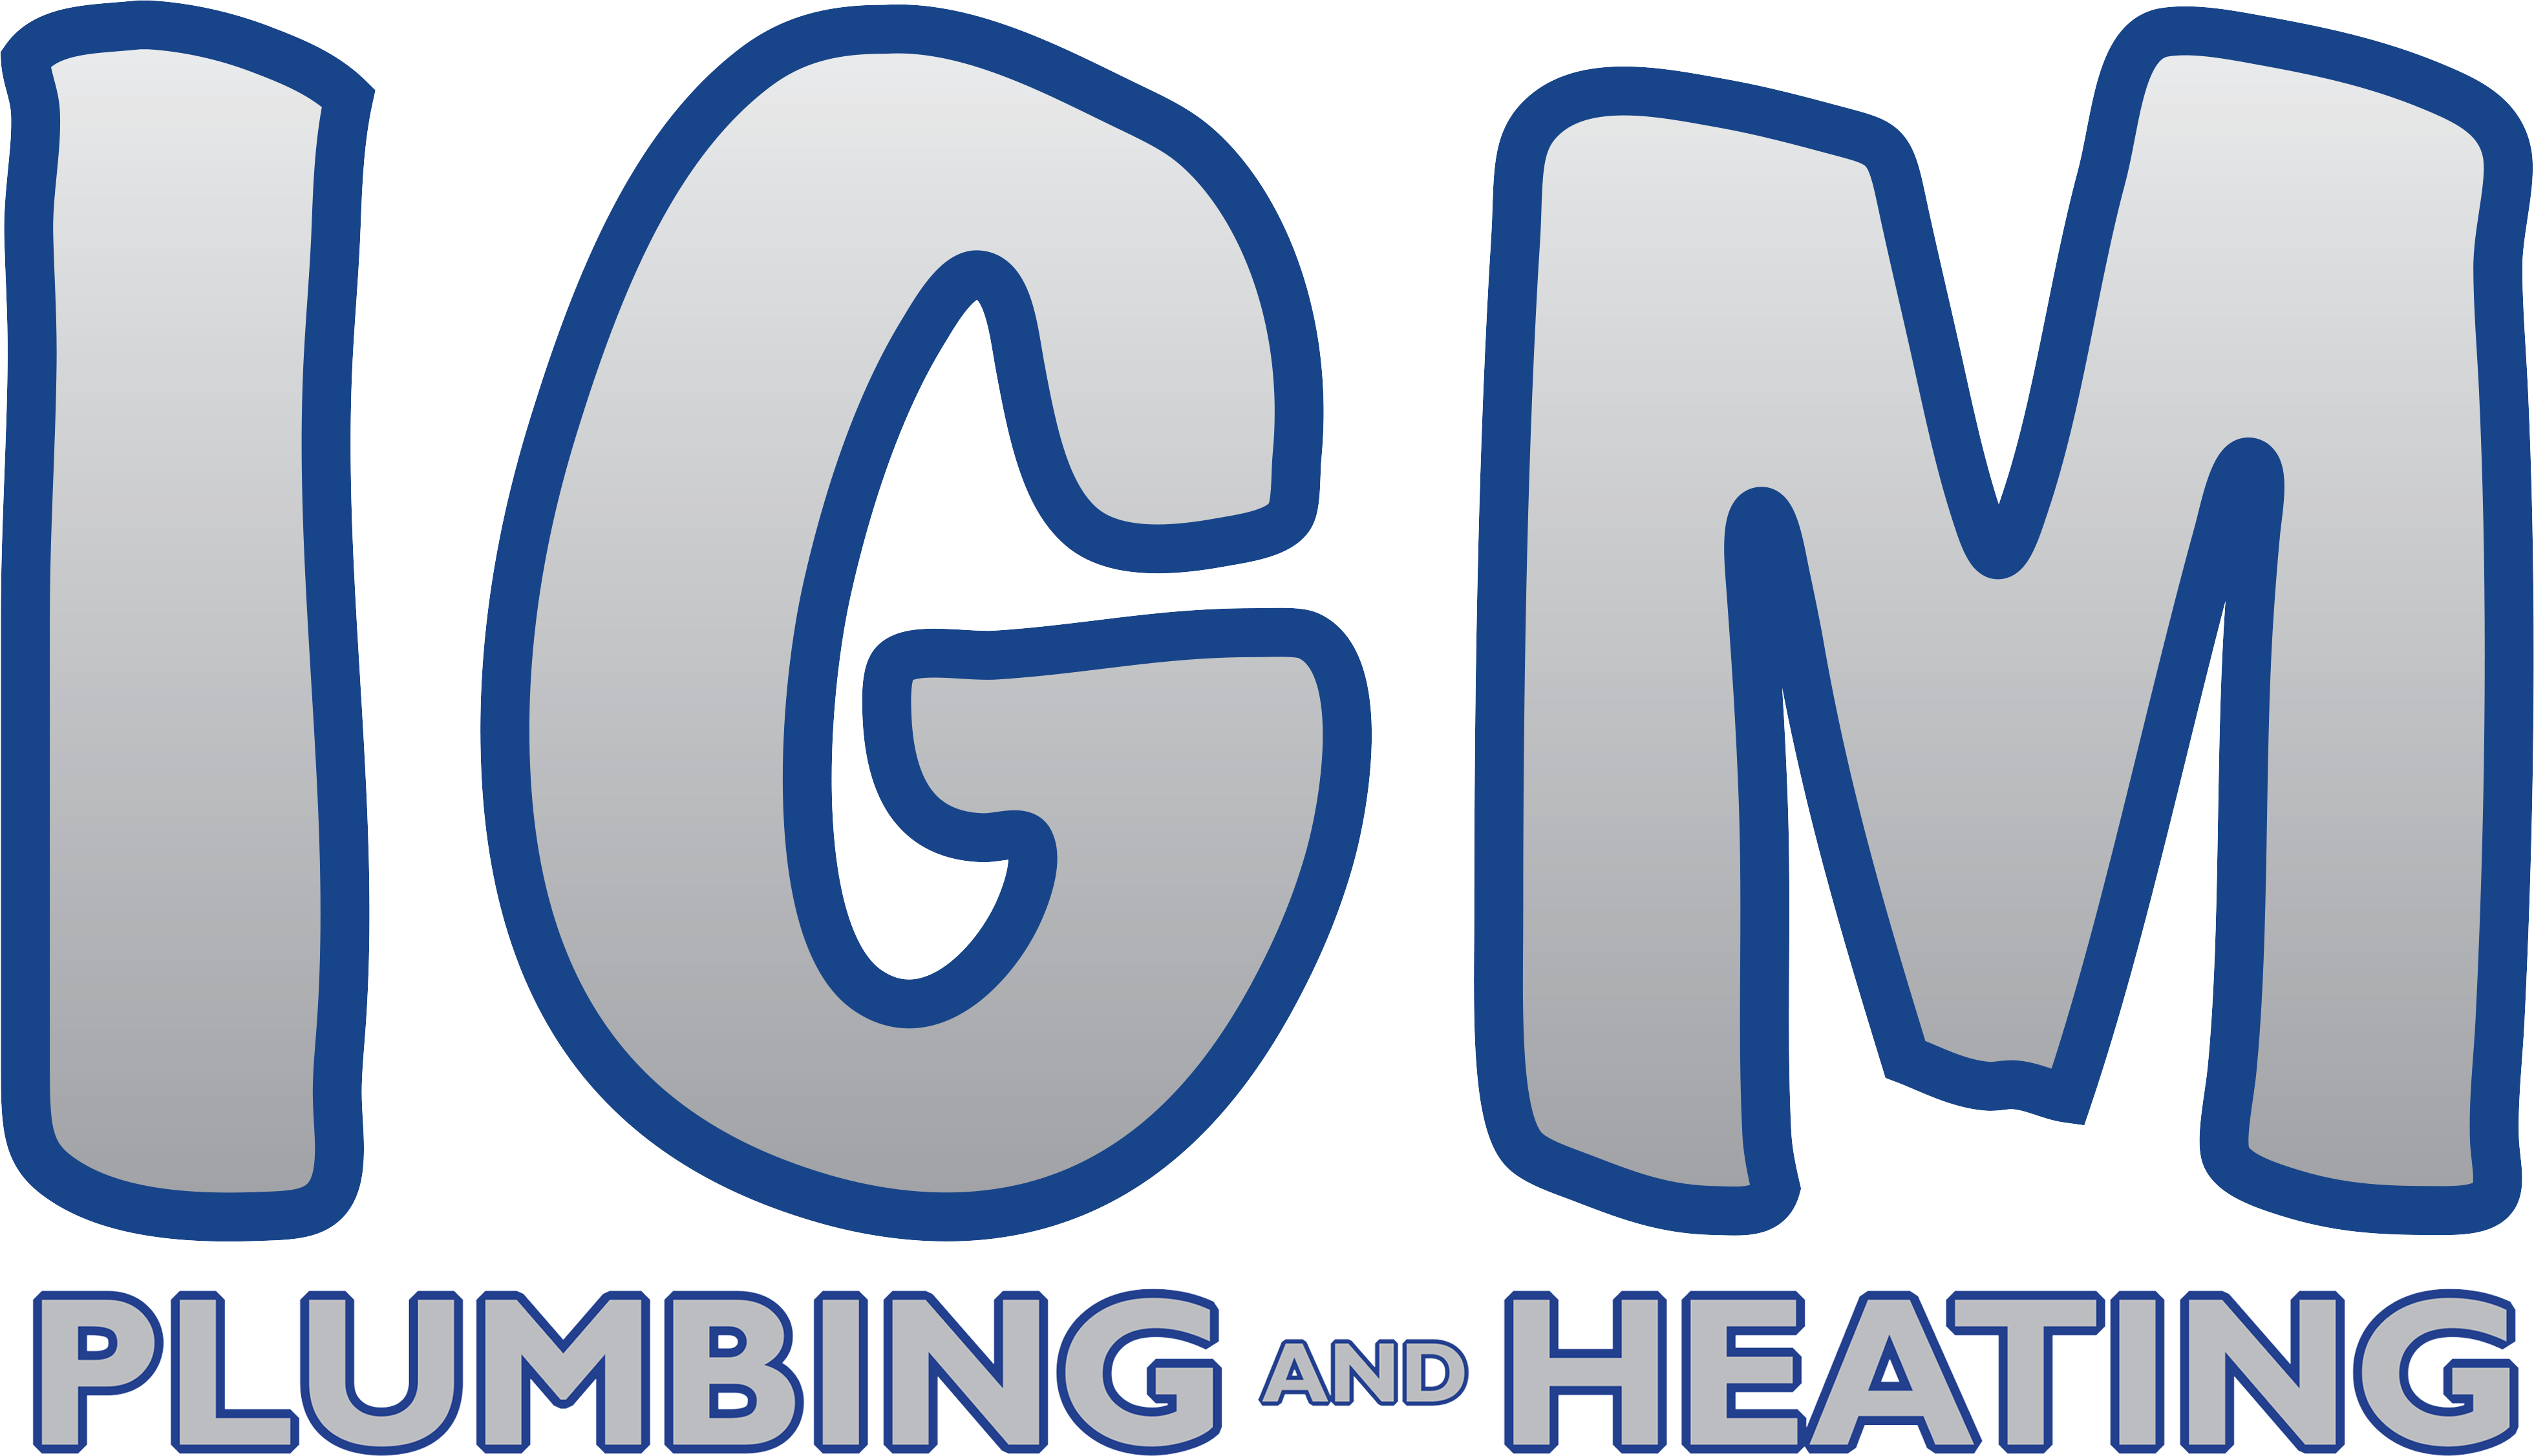 IGM Plumbing and Heating LTD